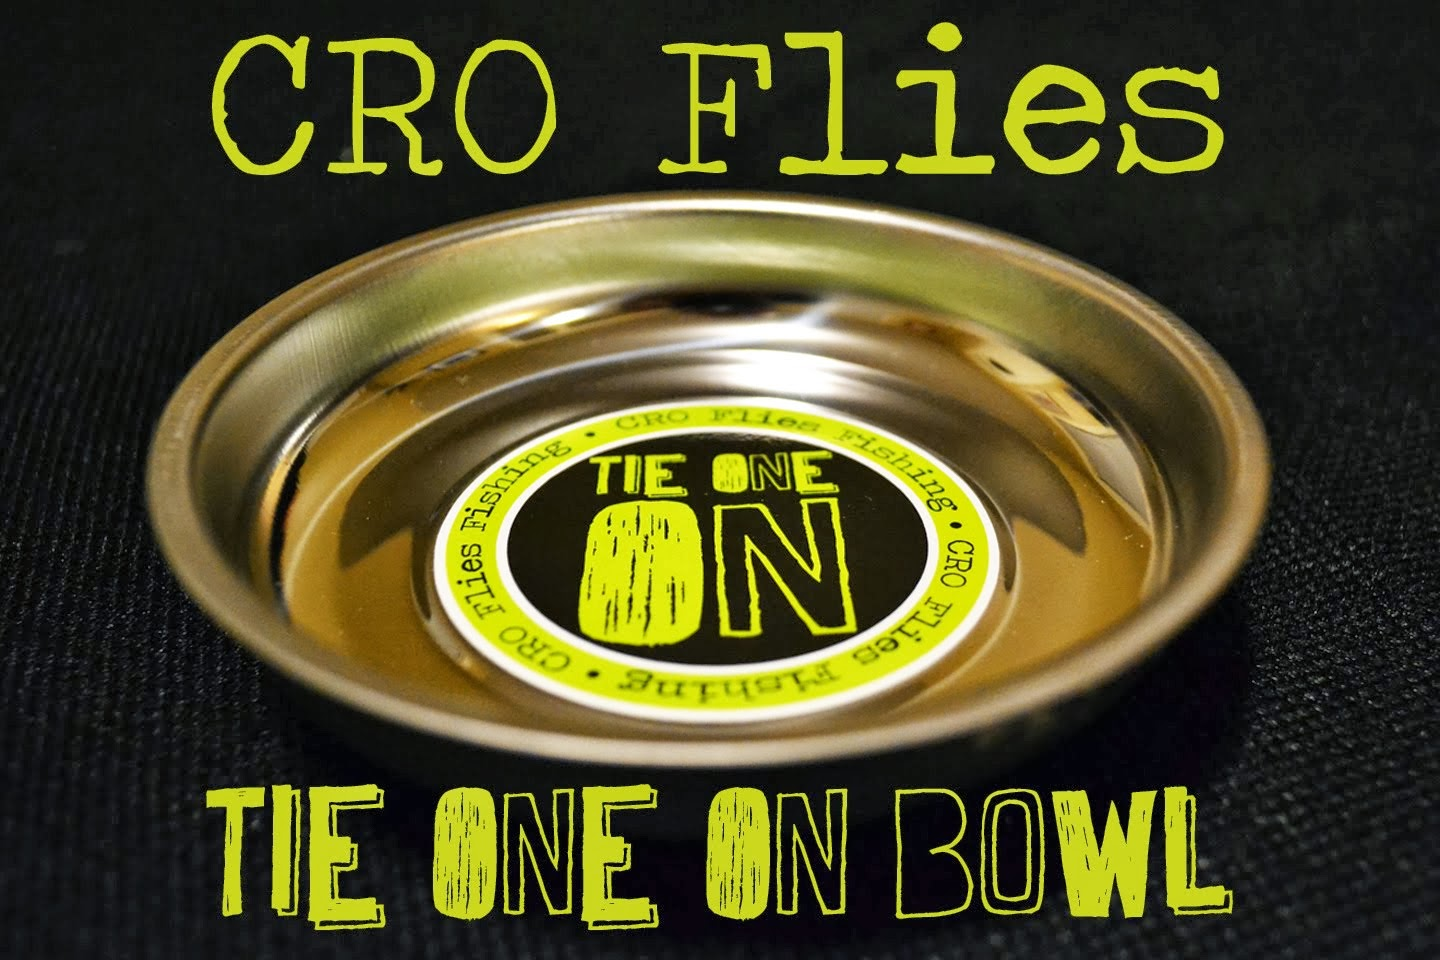 Pick up your TIE ONE ON Hook Bowl Today